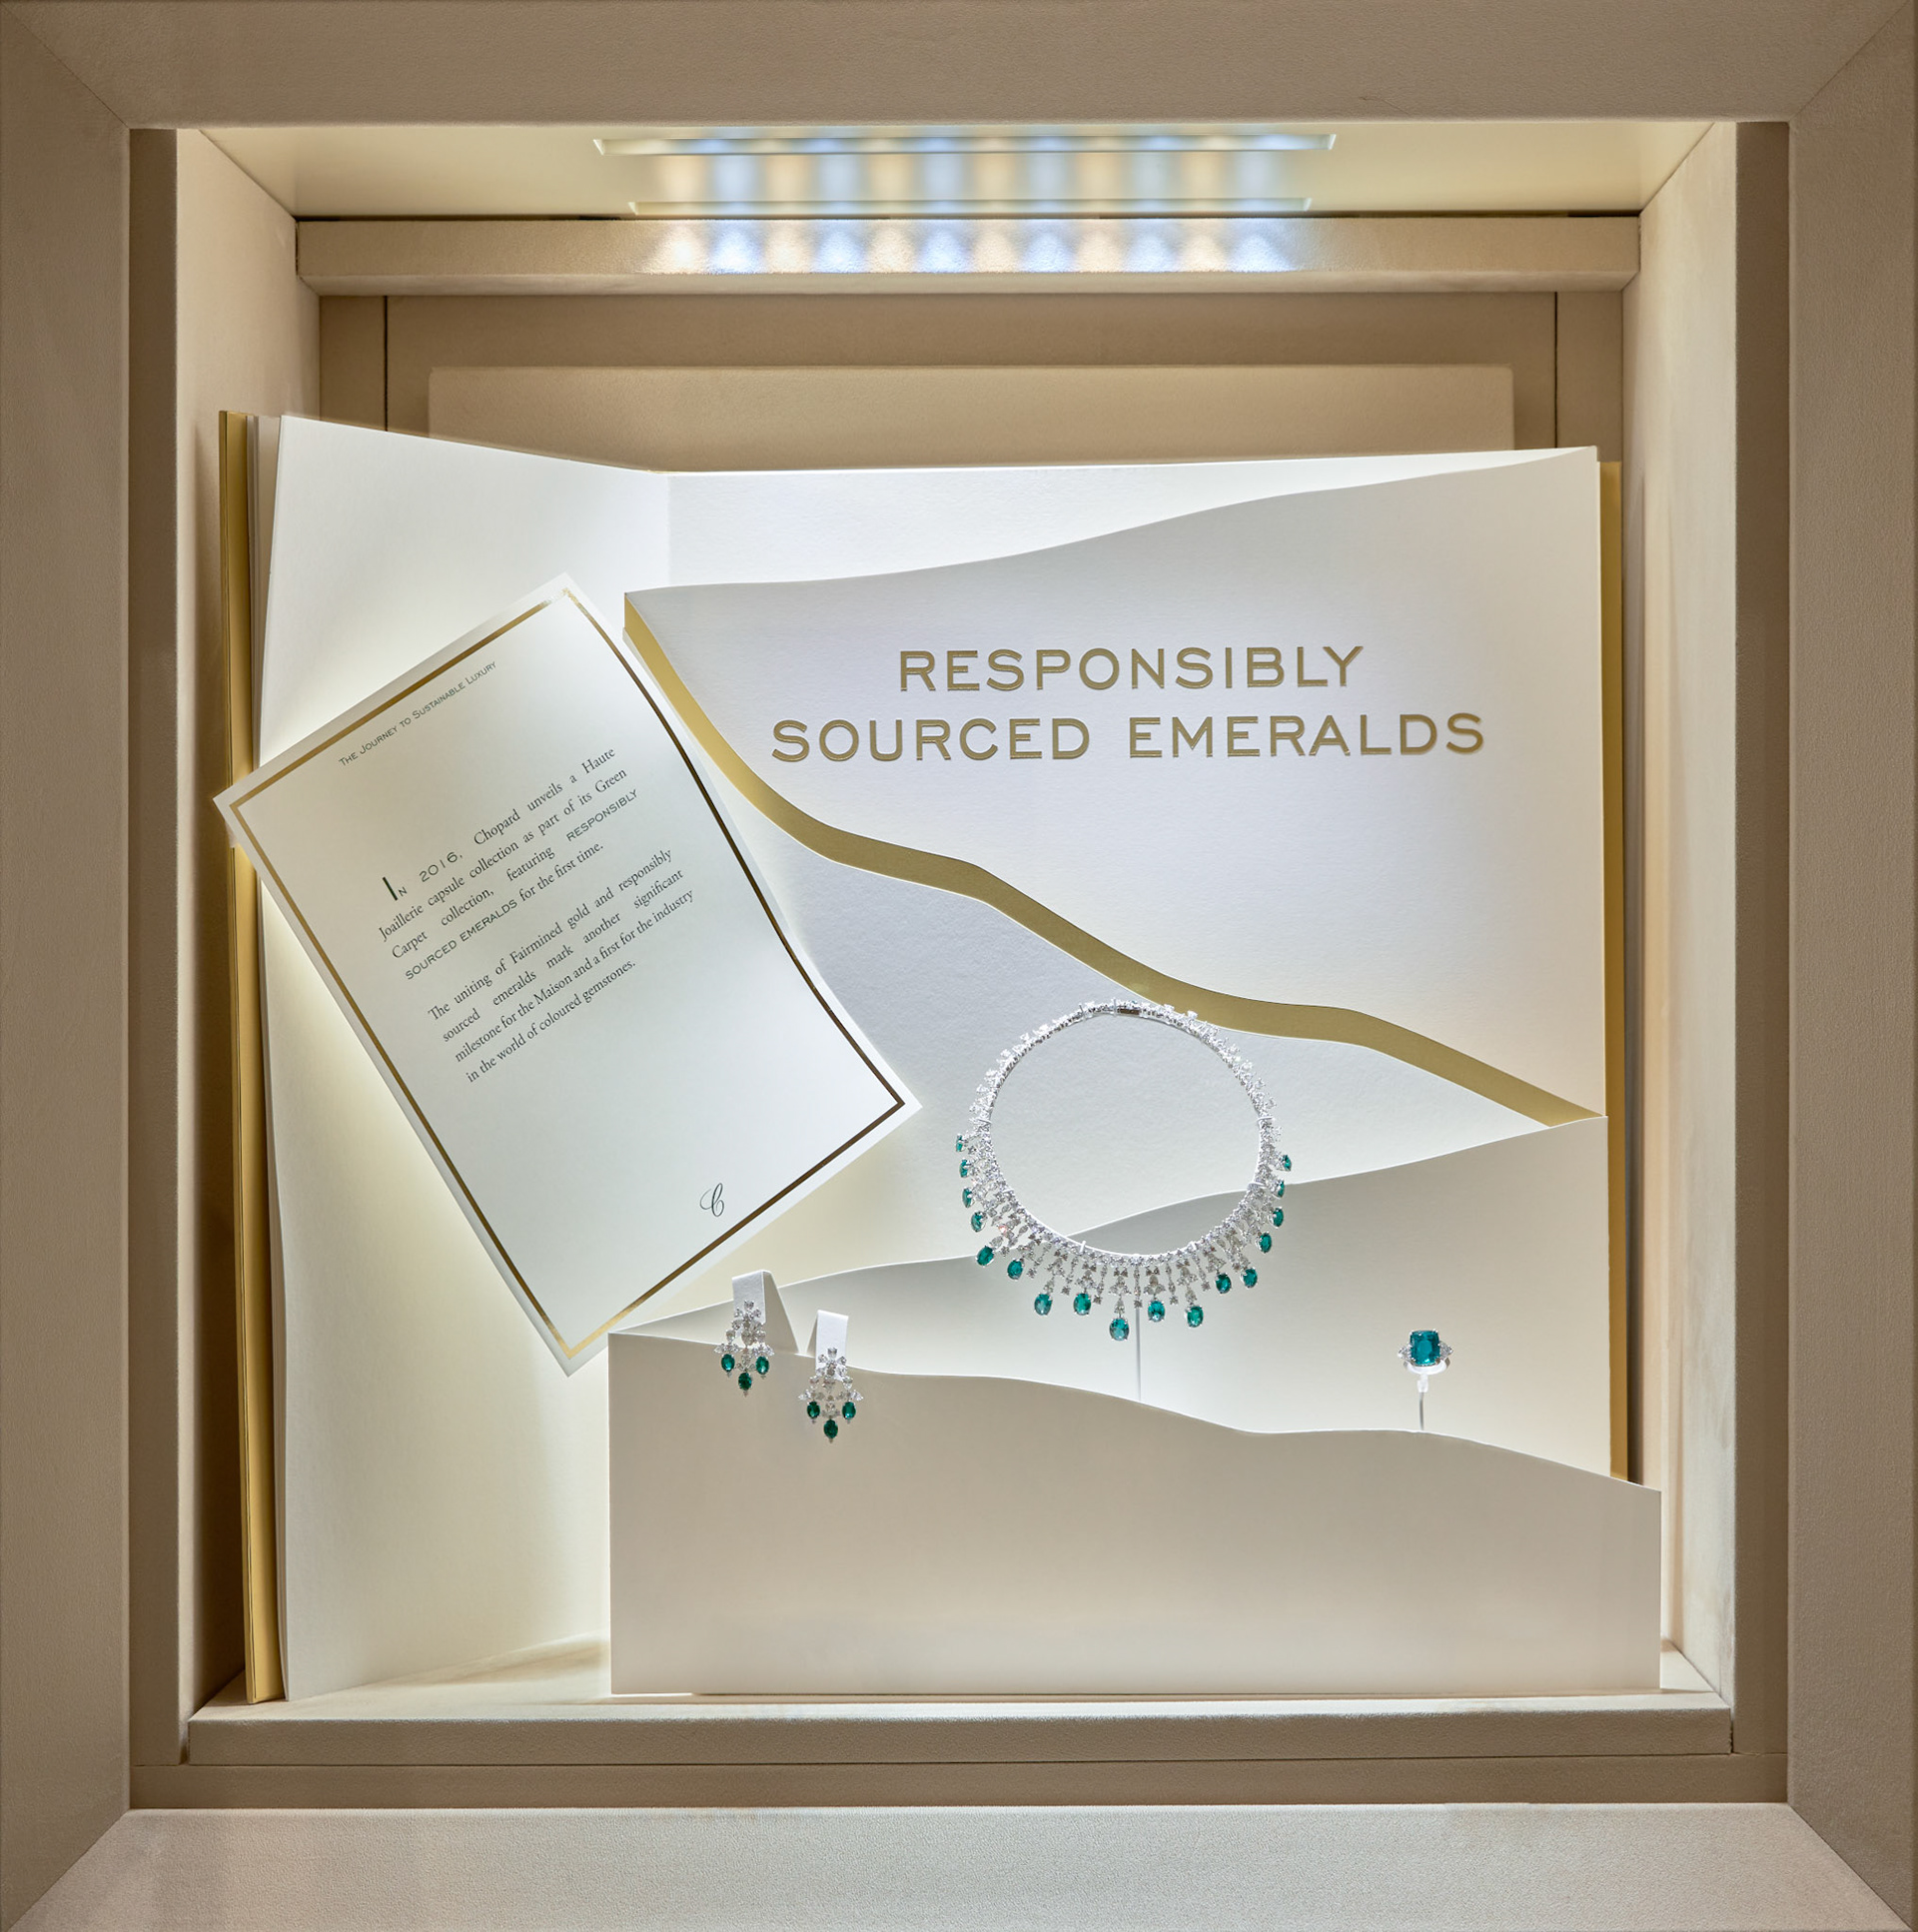 Retail Photography Chopard window with responsibly sourced emerald